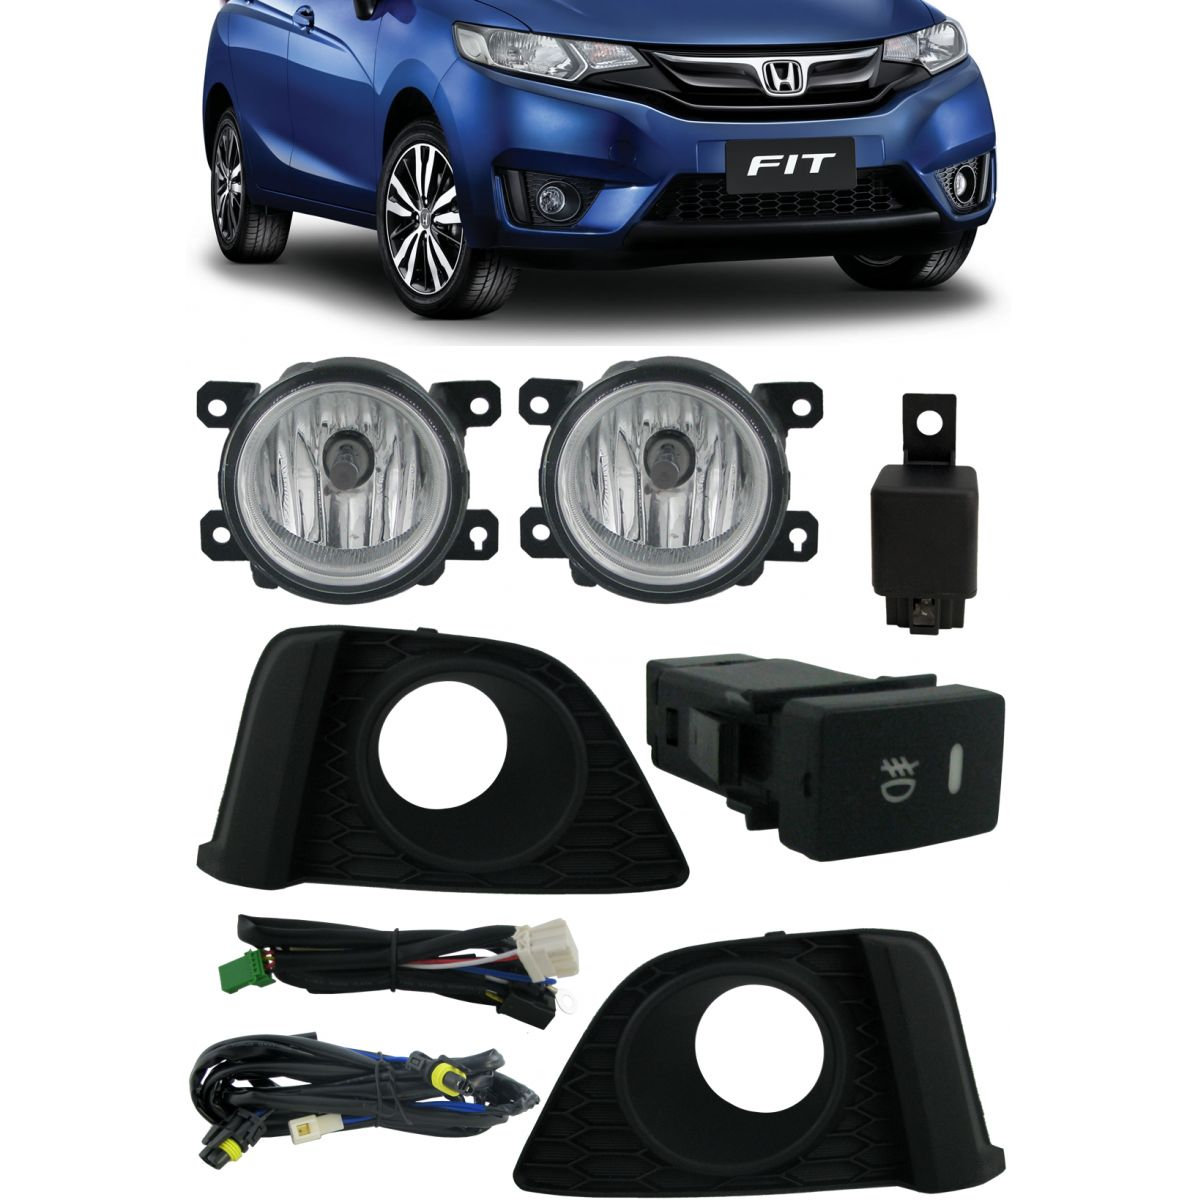 Kit Farol de Milha Neblina Honda New Fit 2014 á 2018 - Interruptor Modelo Original